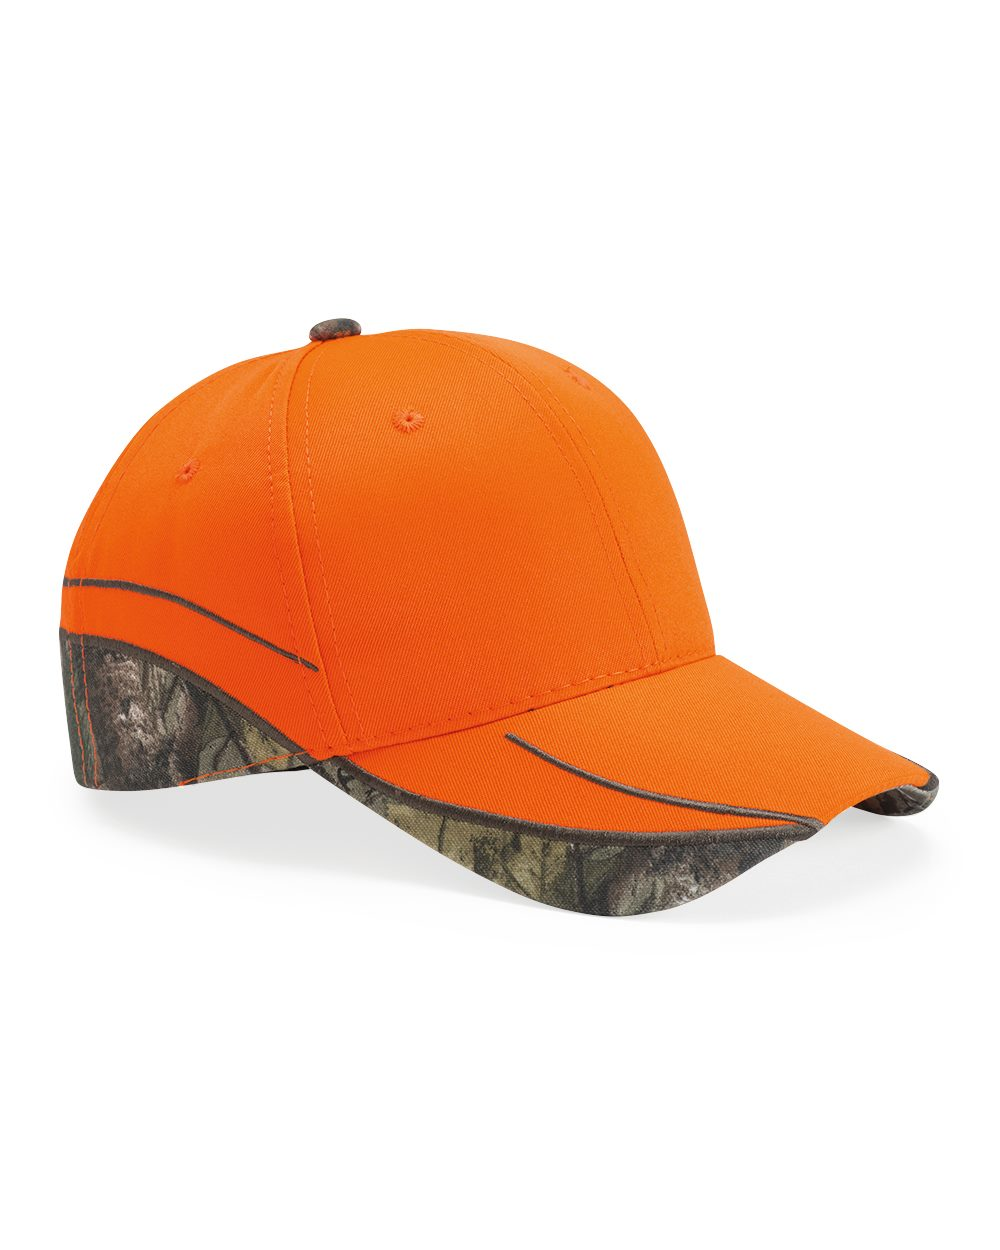 Outdoor Cap BLZ615 - Blaze Cap With Camo Trim